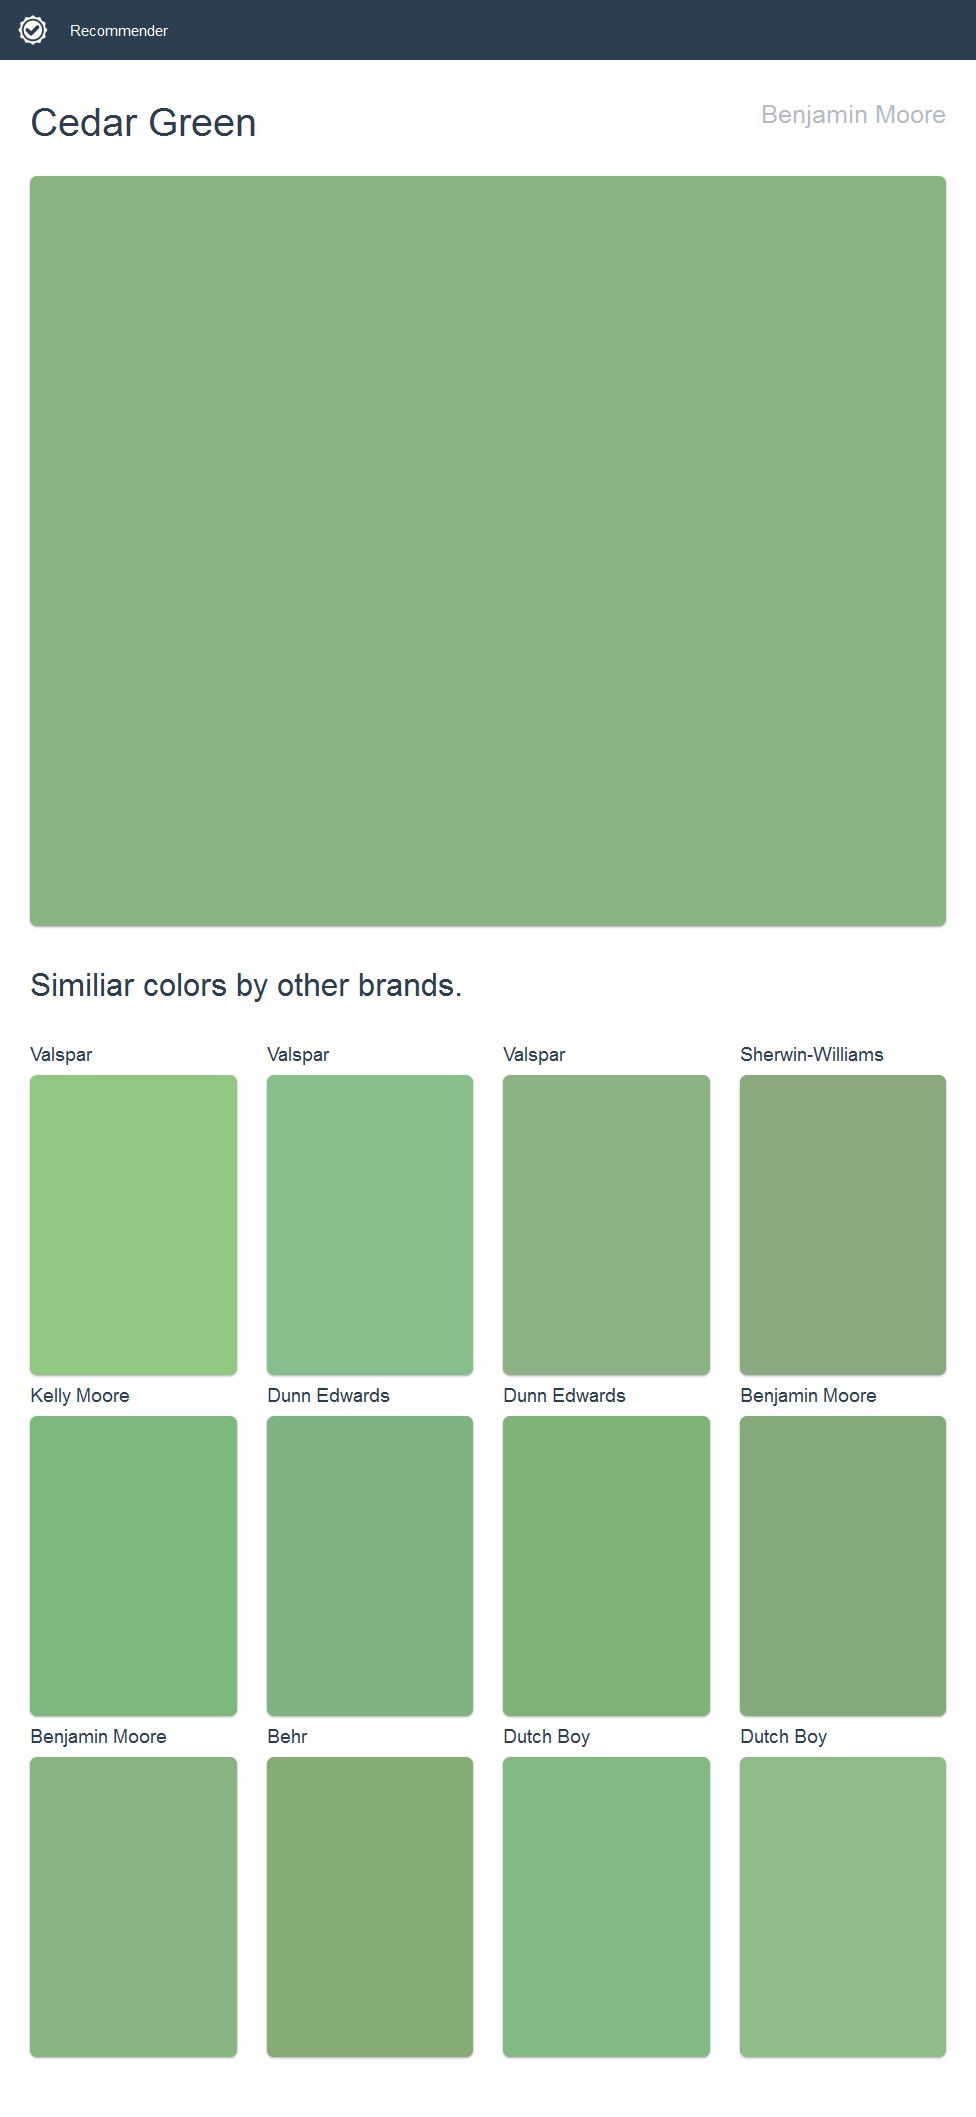 Cedar Green Benjamin Moore Click The Image To See Similiar Colors By Other Brands Dutch Boy Paint Ppg Paint Dutch Boy